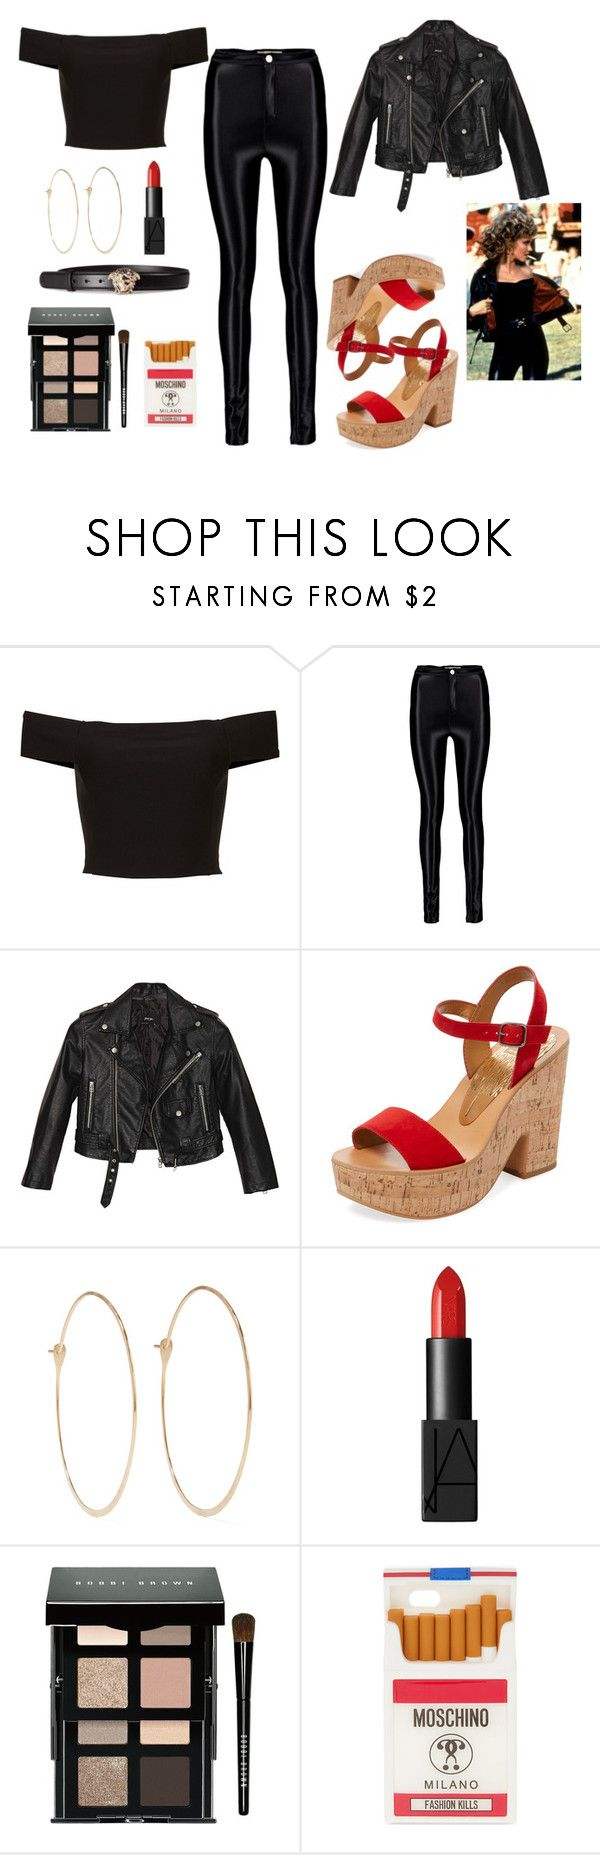 """""""Sandy from 'Grease' costume"""" by one-direction-outfits-of-the-day ❤ liked on Polyvore featuring Nasty Gal, Dolce Vita, Melissa Joy Manning, NARS Cosmetics, Bobbi Brown Cosmetics, Moschino and Versace"""